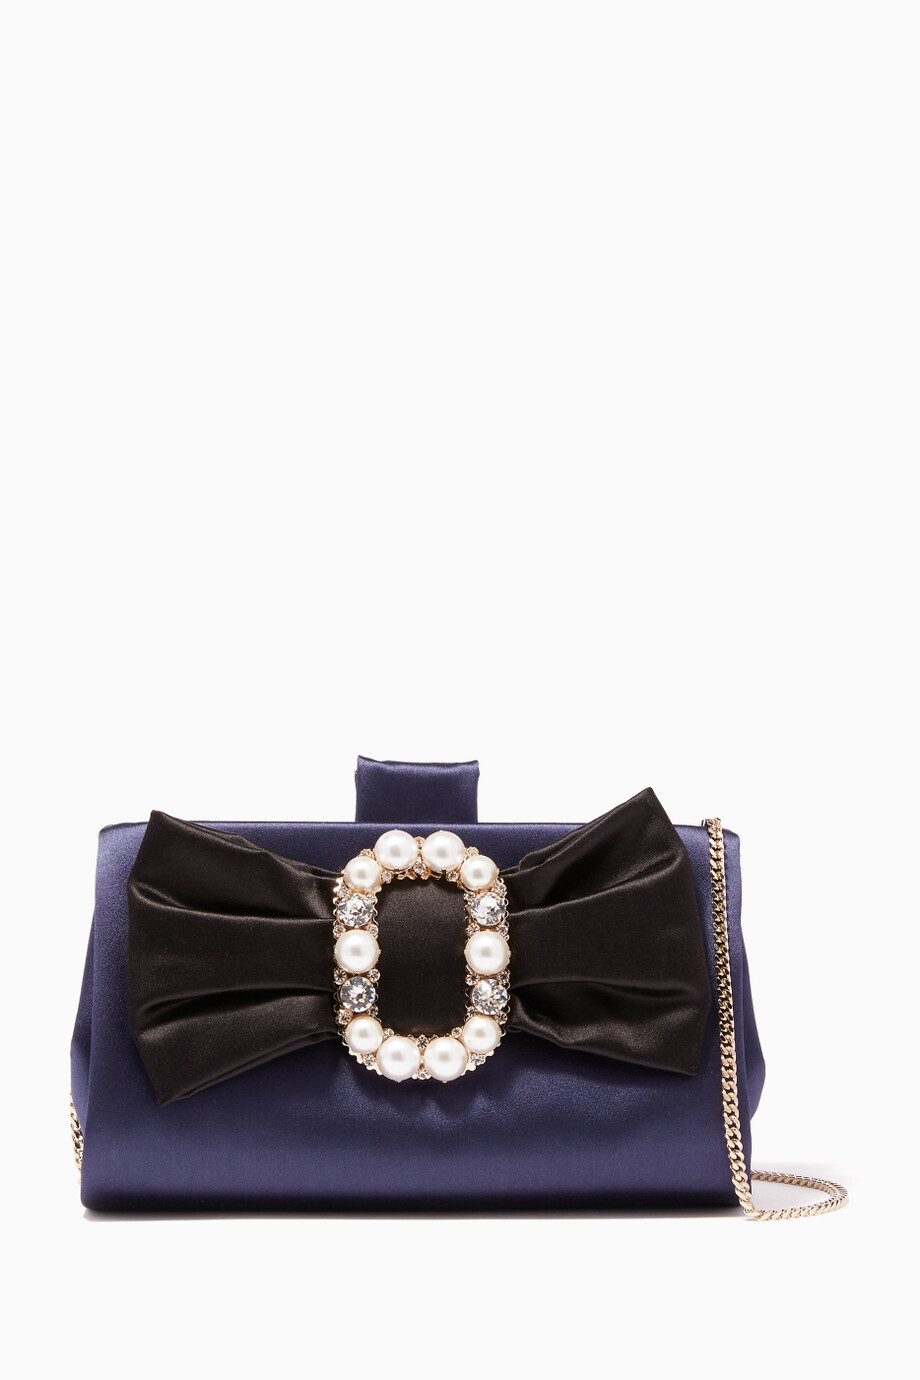 cb60408d81 Shop Roger Vivier Blue Navy Embellished Buckle Bow Satin Clutch for ...